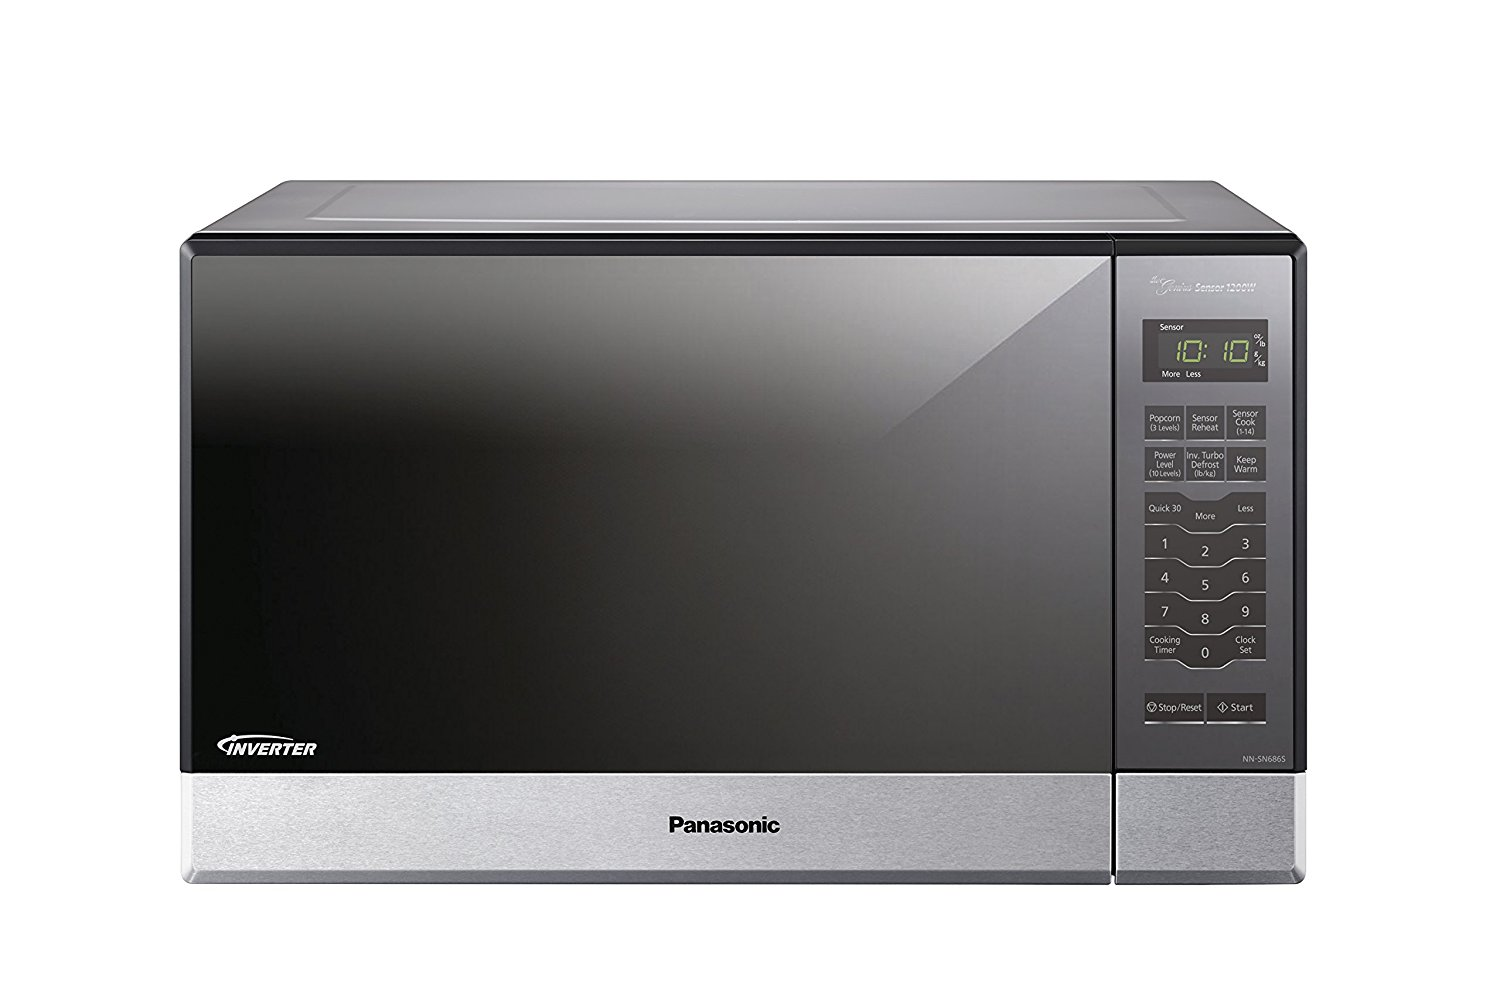 Panasonic NN-SN686S Countertop/Built-In Microwave with Inverter Technology, 1.2 cu. ft. , Stainless